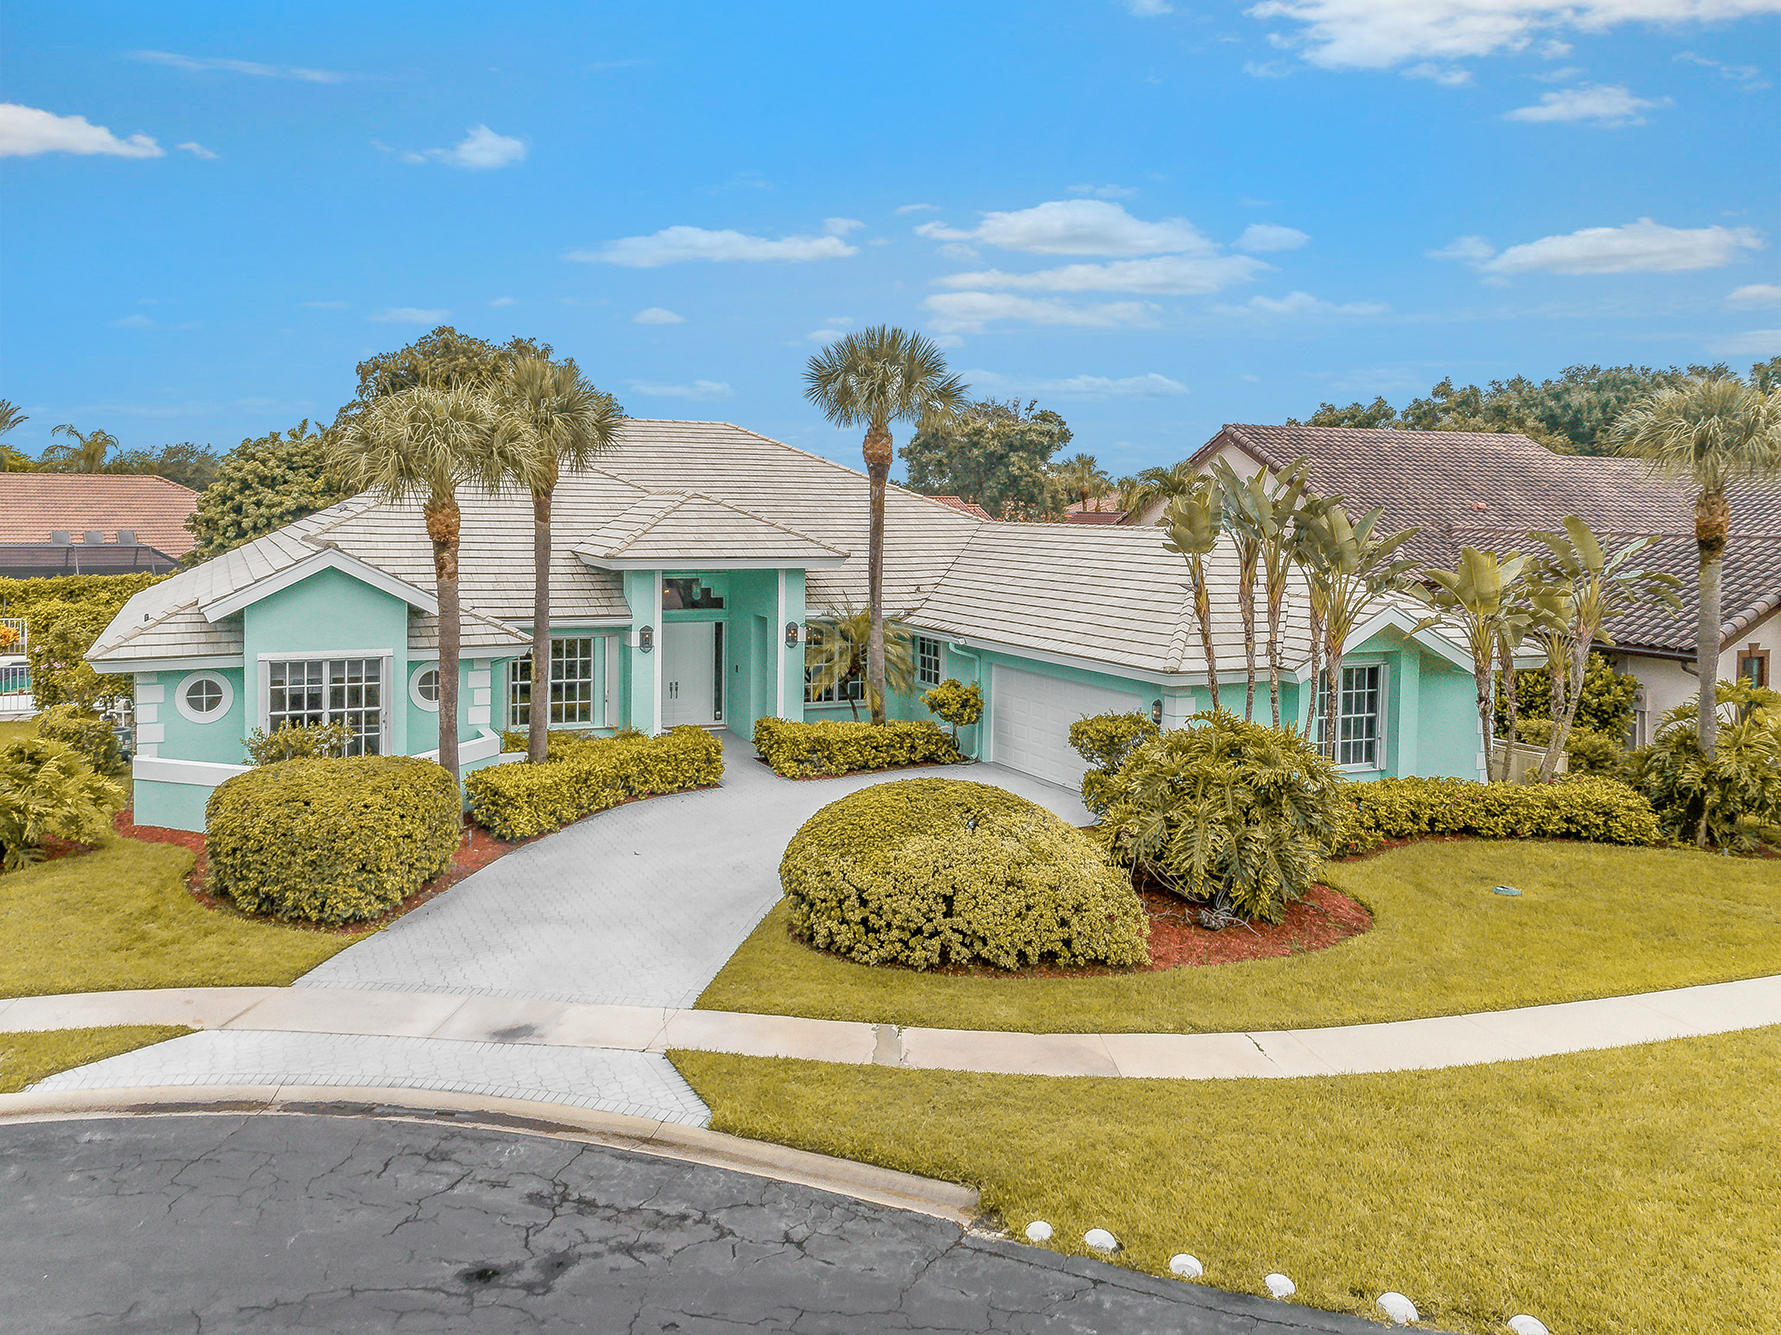 Home for sale in POLO WEST ESTATES - GREENVIEW COVE OF WELLINGTON Wellington Florida